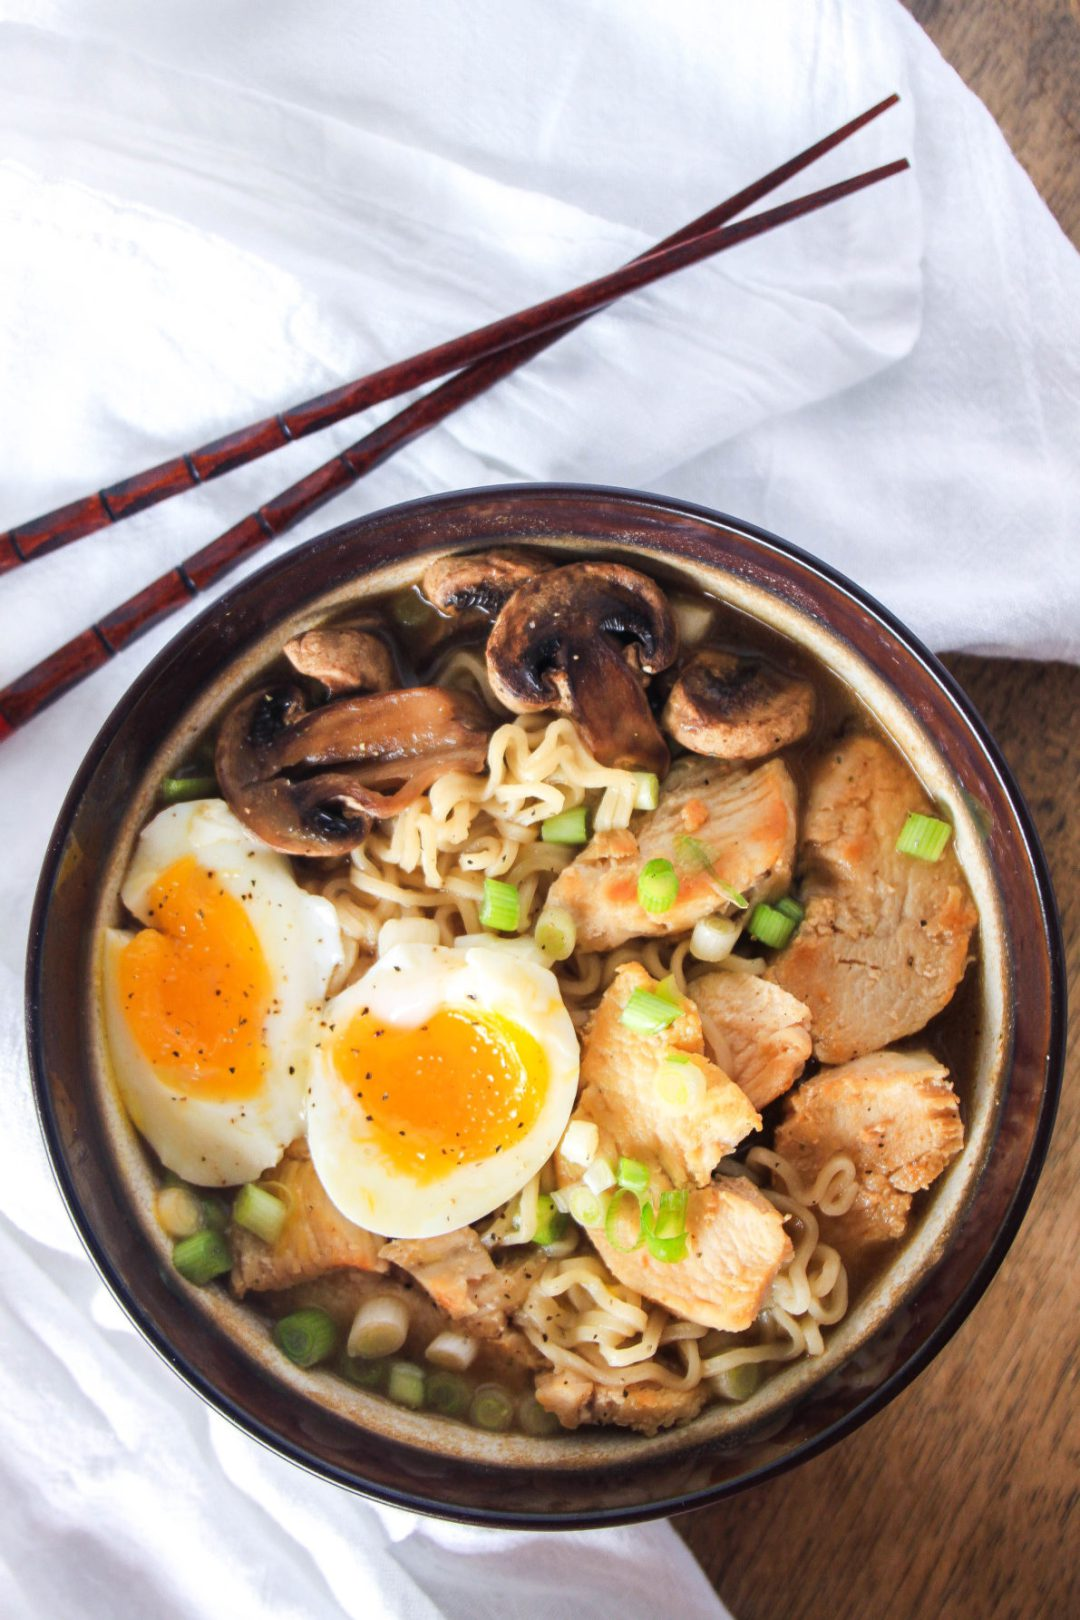 30 Days of Healthy Chicken Dinner Recipes - Japanese Ramen with Chicken via Wanderzest | https://www.roseclearfield.com